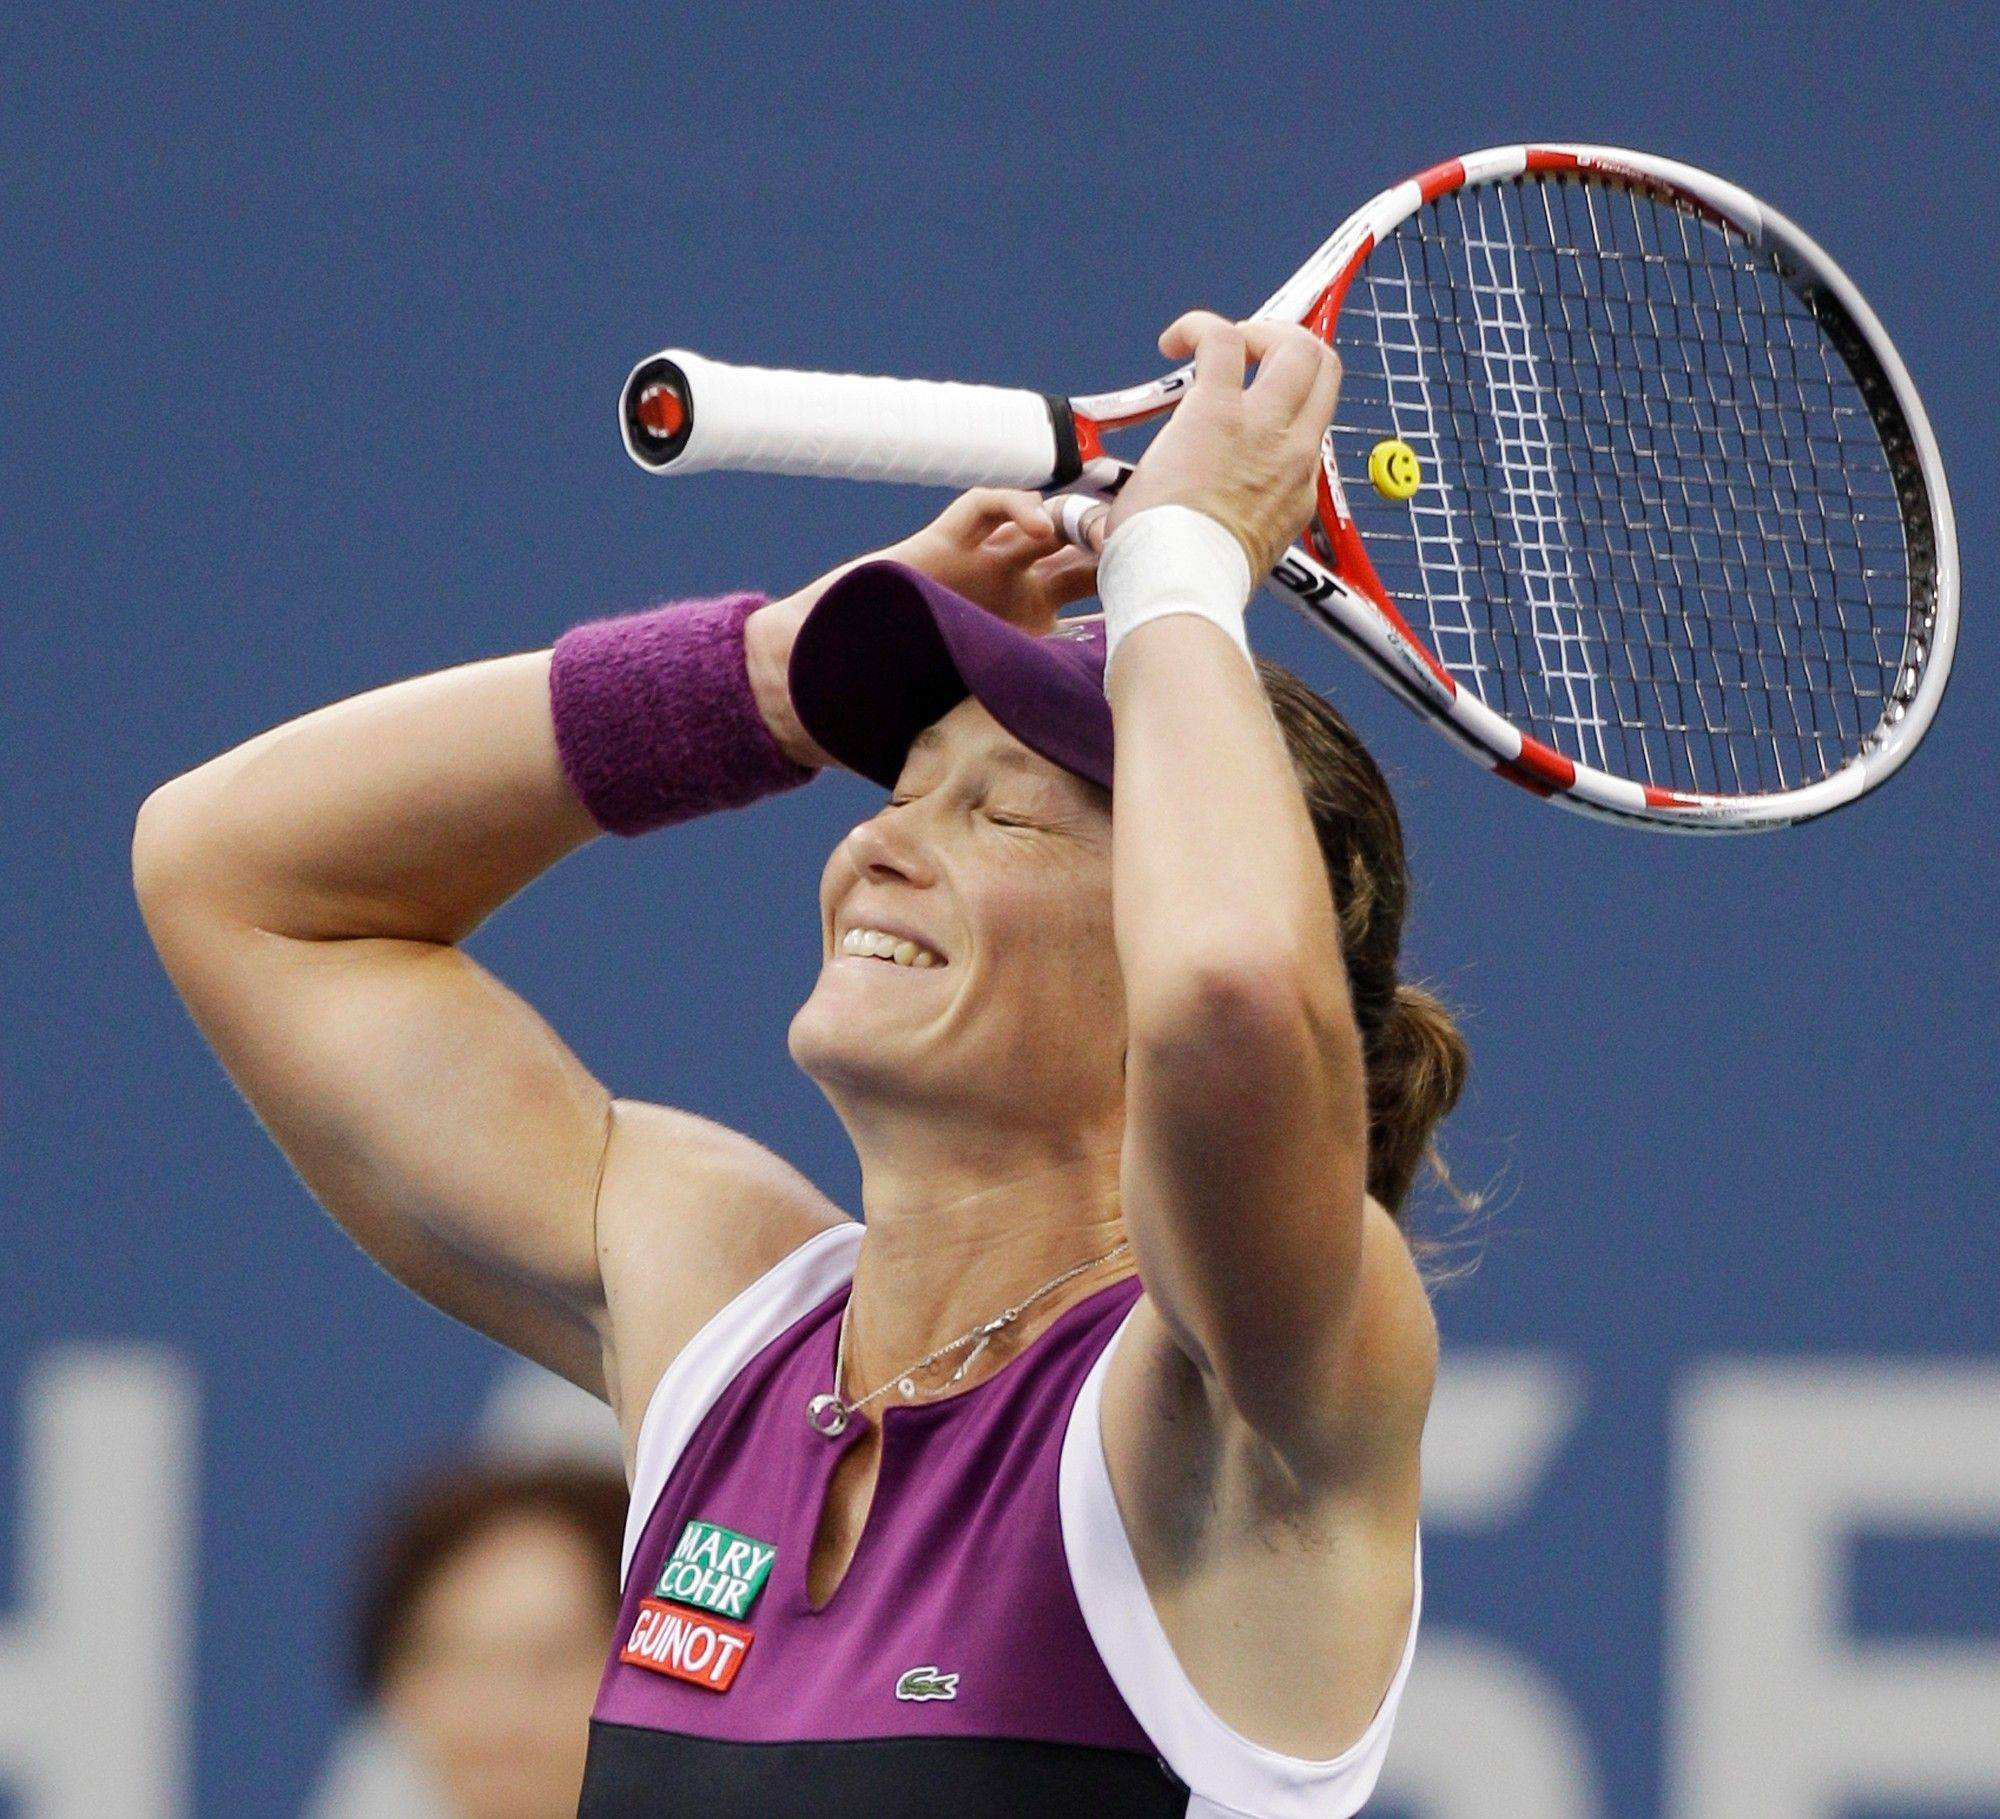 Samantha Stosur reacts after winning the women's championship match against Serena Williams at the U.S. Open on Sunday.